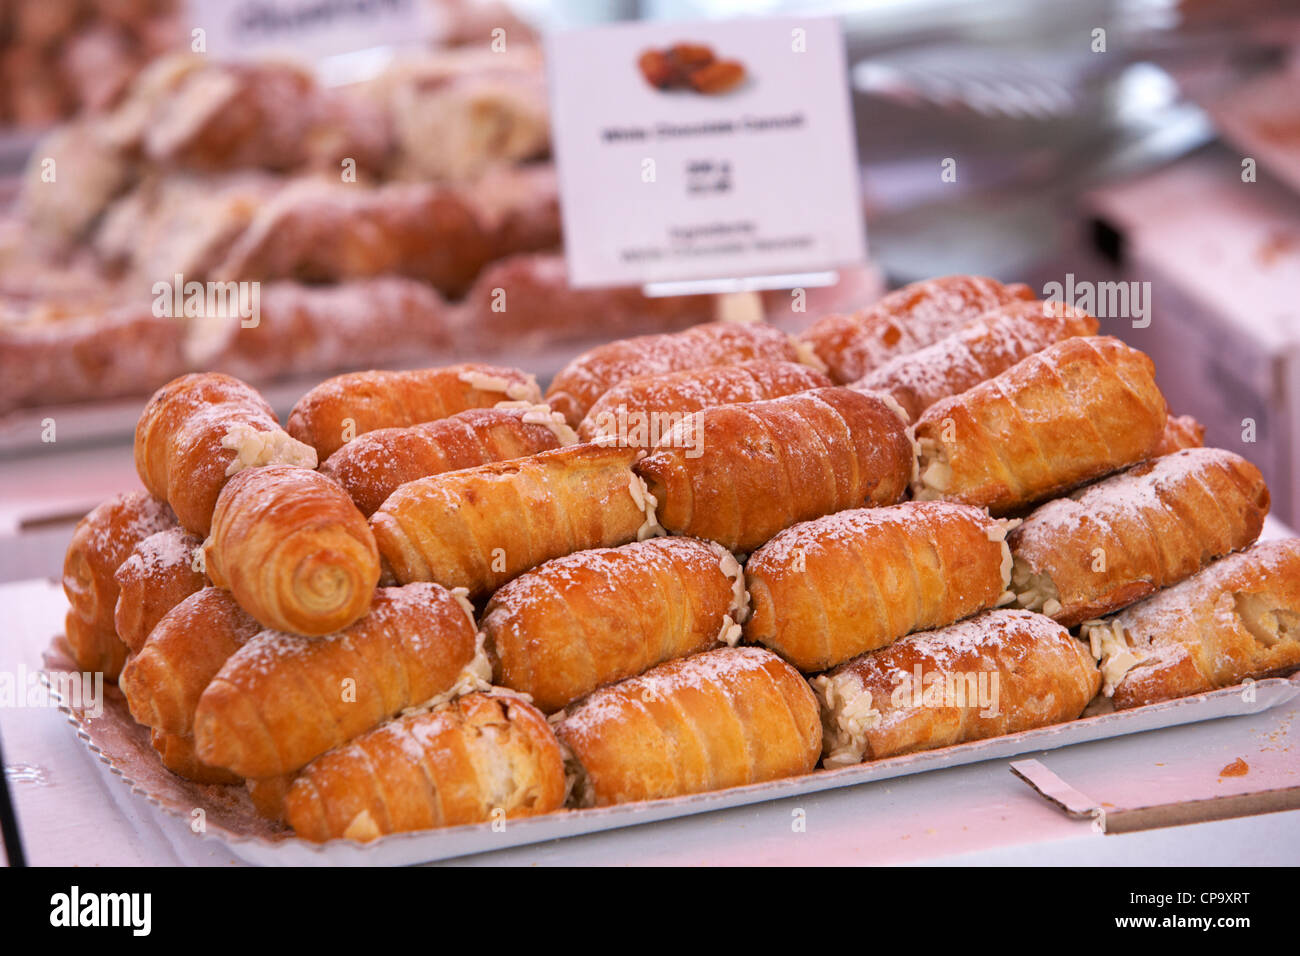 various italian cannoli desserts on sale at an italian food market in the uk - Stock Image